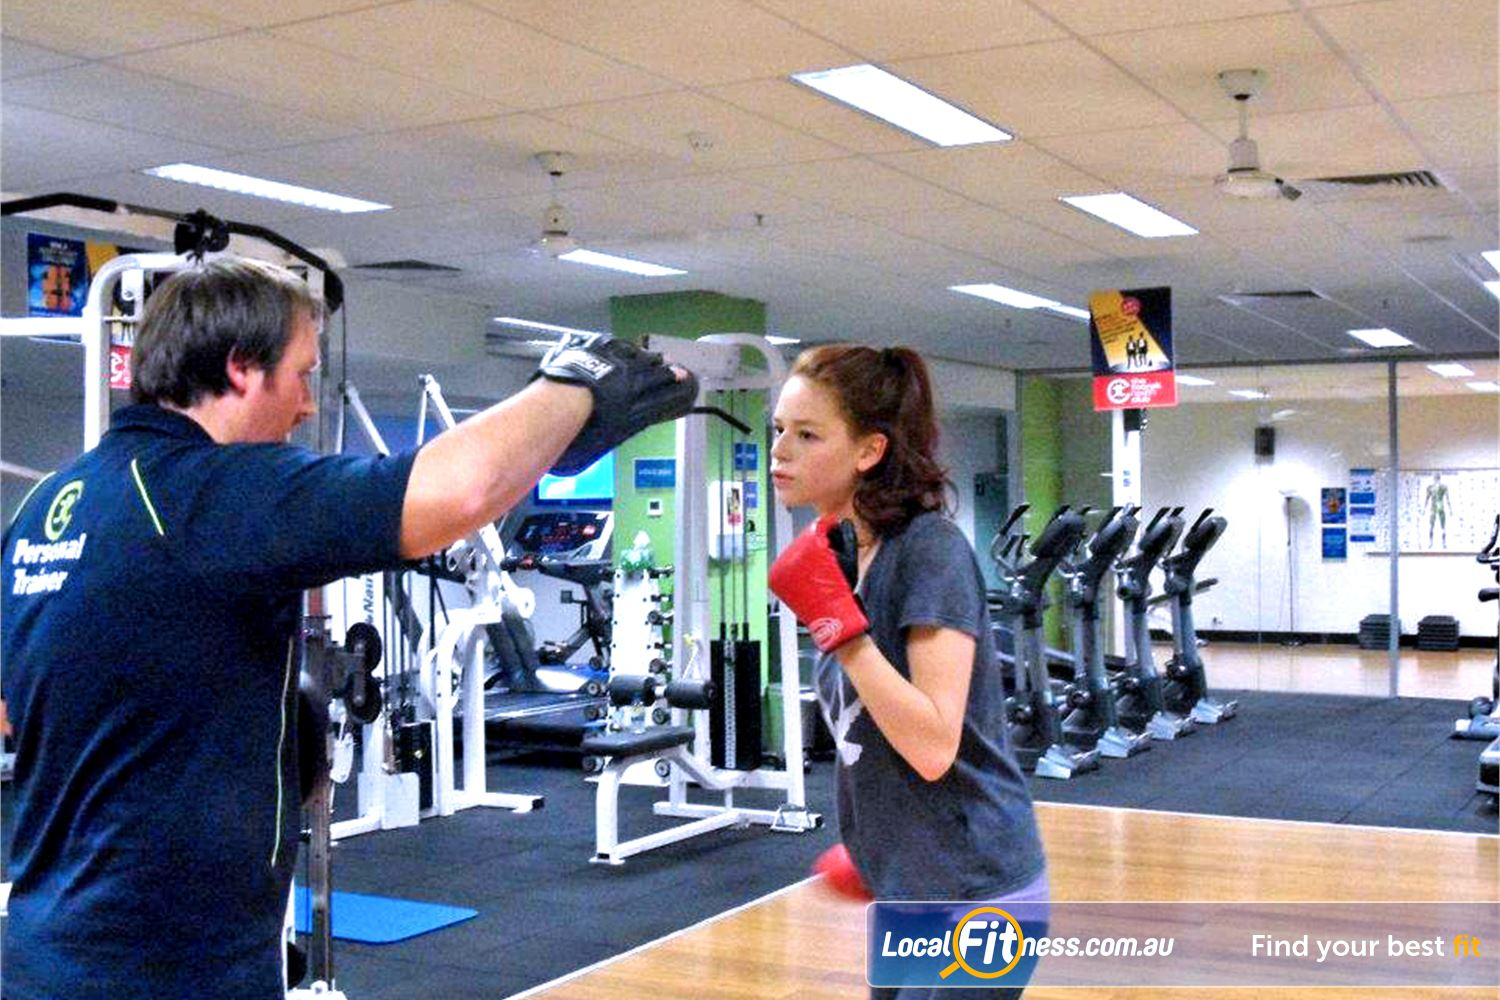 The Toorak Health Club Near Malvern North Toorak personal trainers can incorporate boxing into your routine.